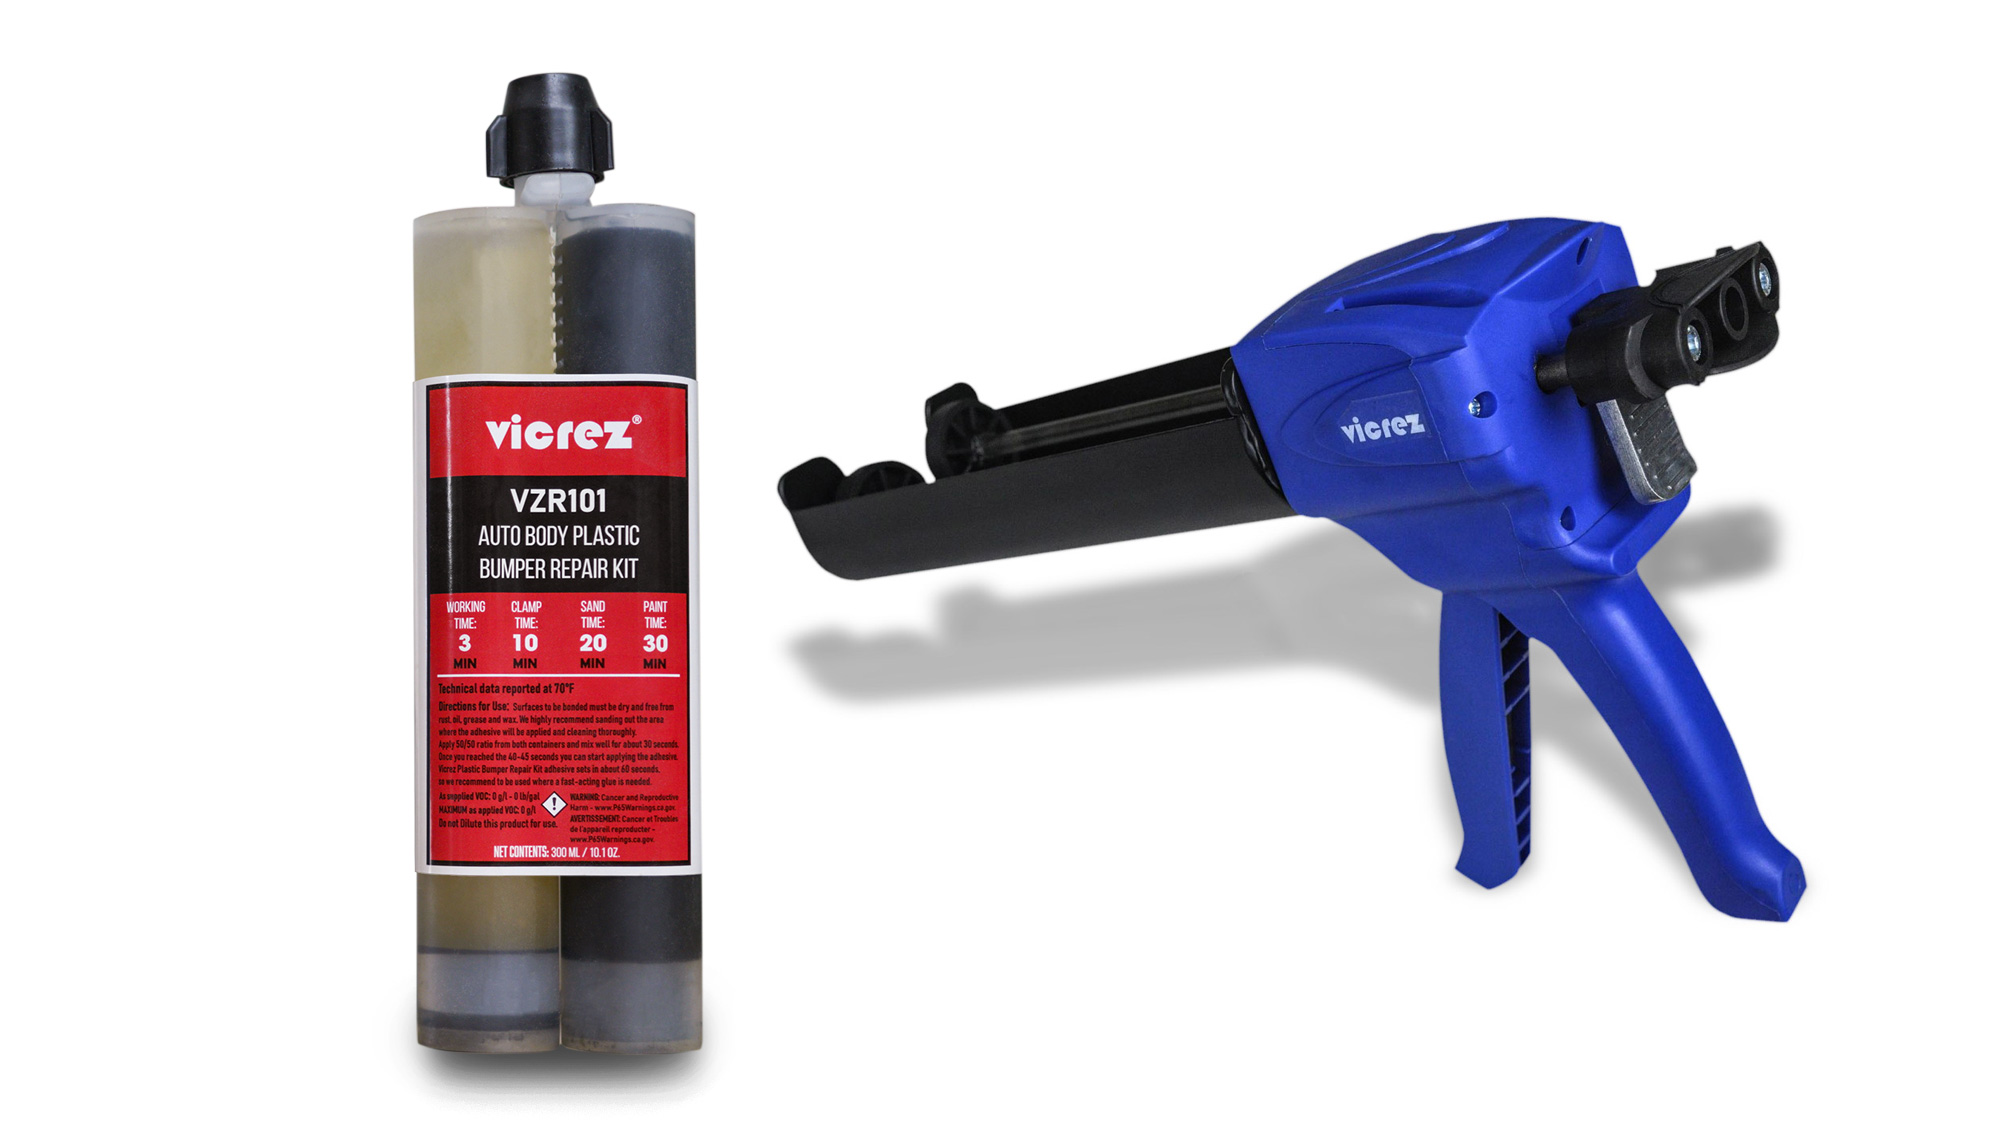 Vicrez vzr101 Auto Body Plastic Bumper Repair Kit w/ Vicrez Caulking Dispensing Gun VZT101